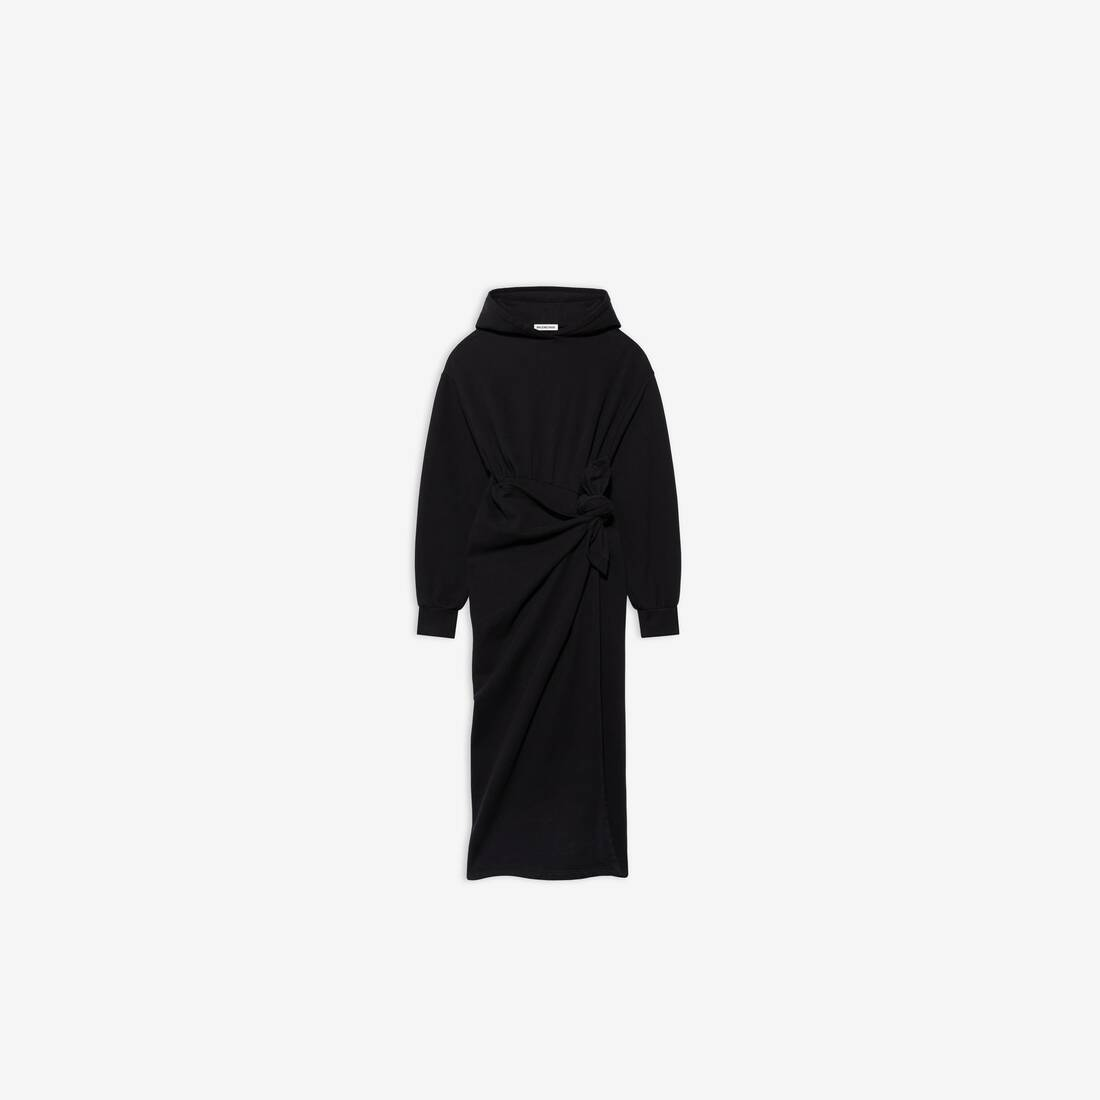 Display zoomed version of easywrap hooded dress 1